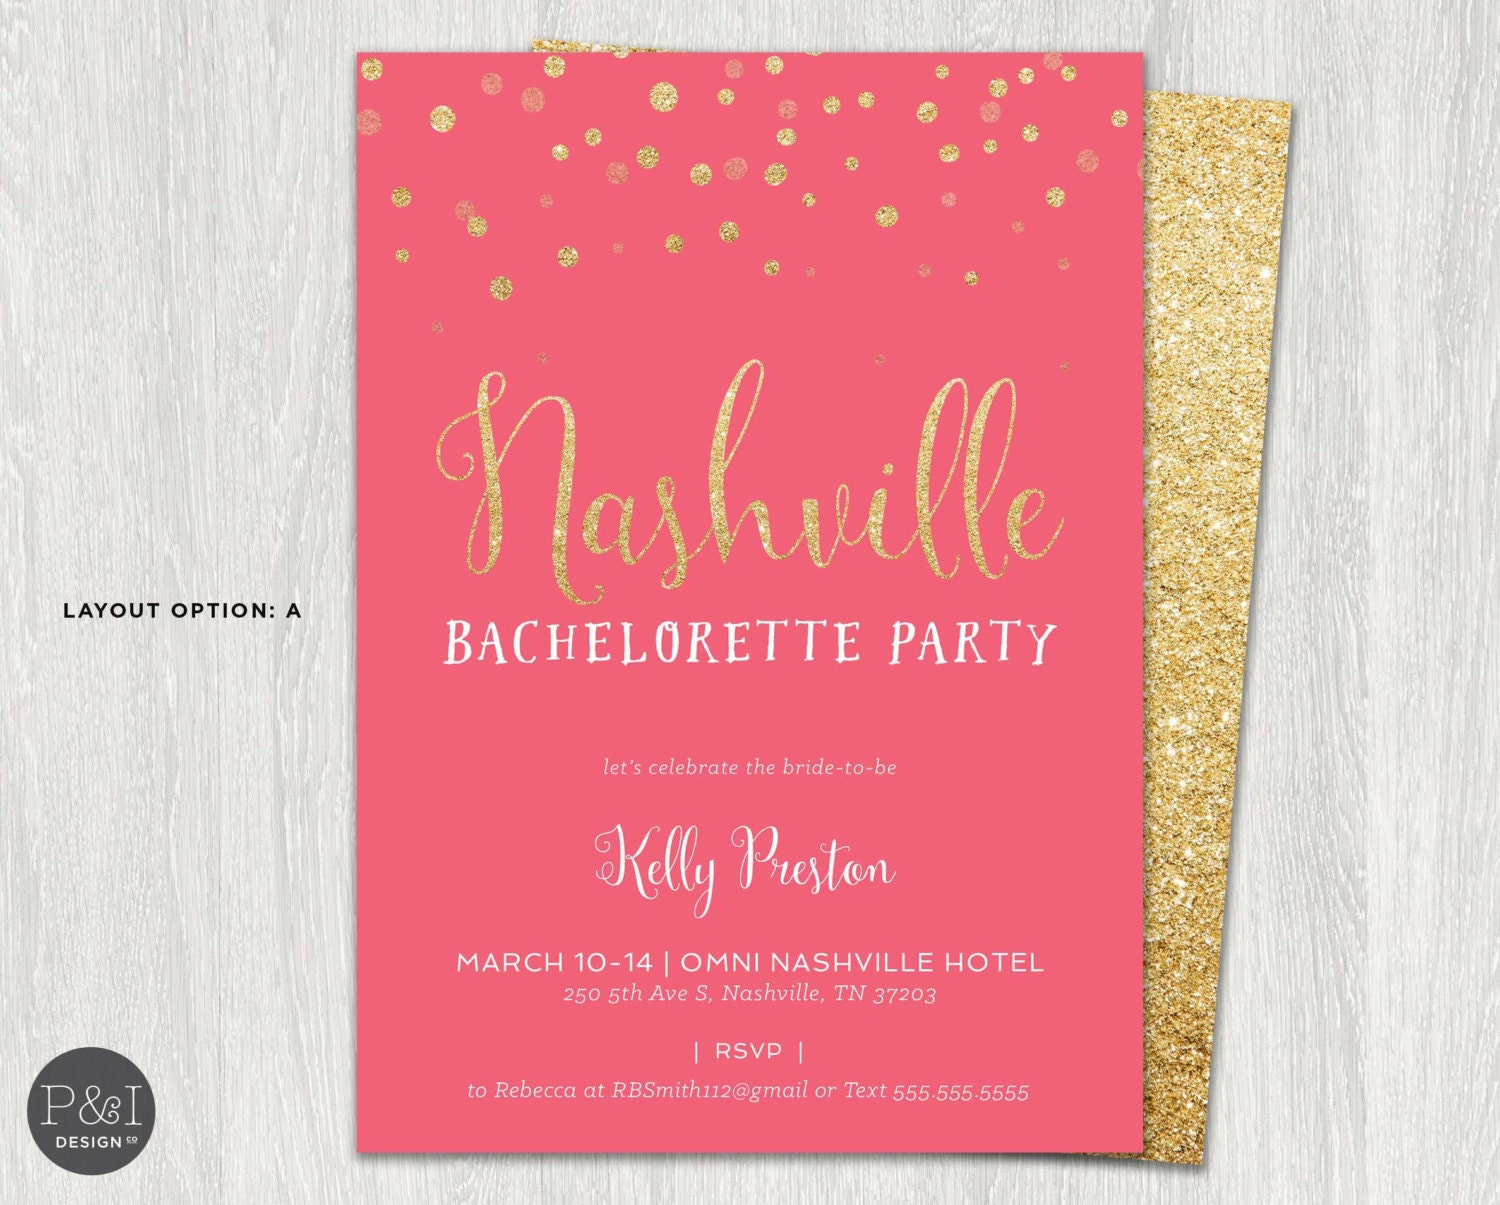 Awesome Bachelorette Party Invitation Templates Gift - Invitations ...